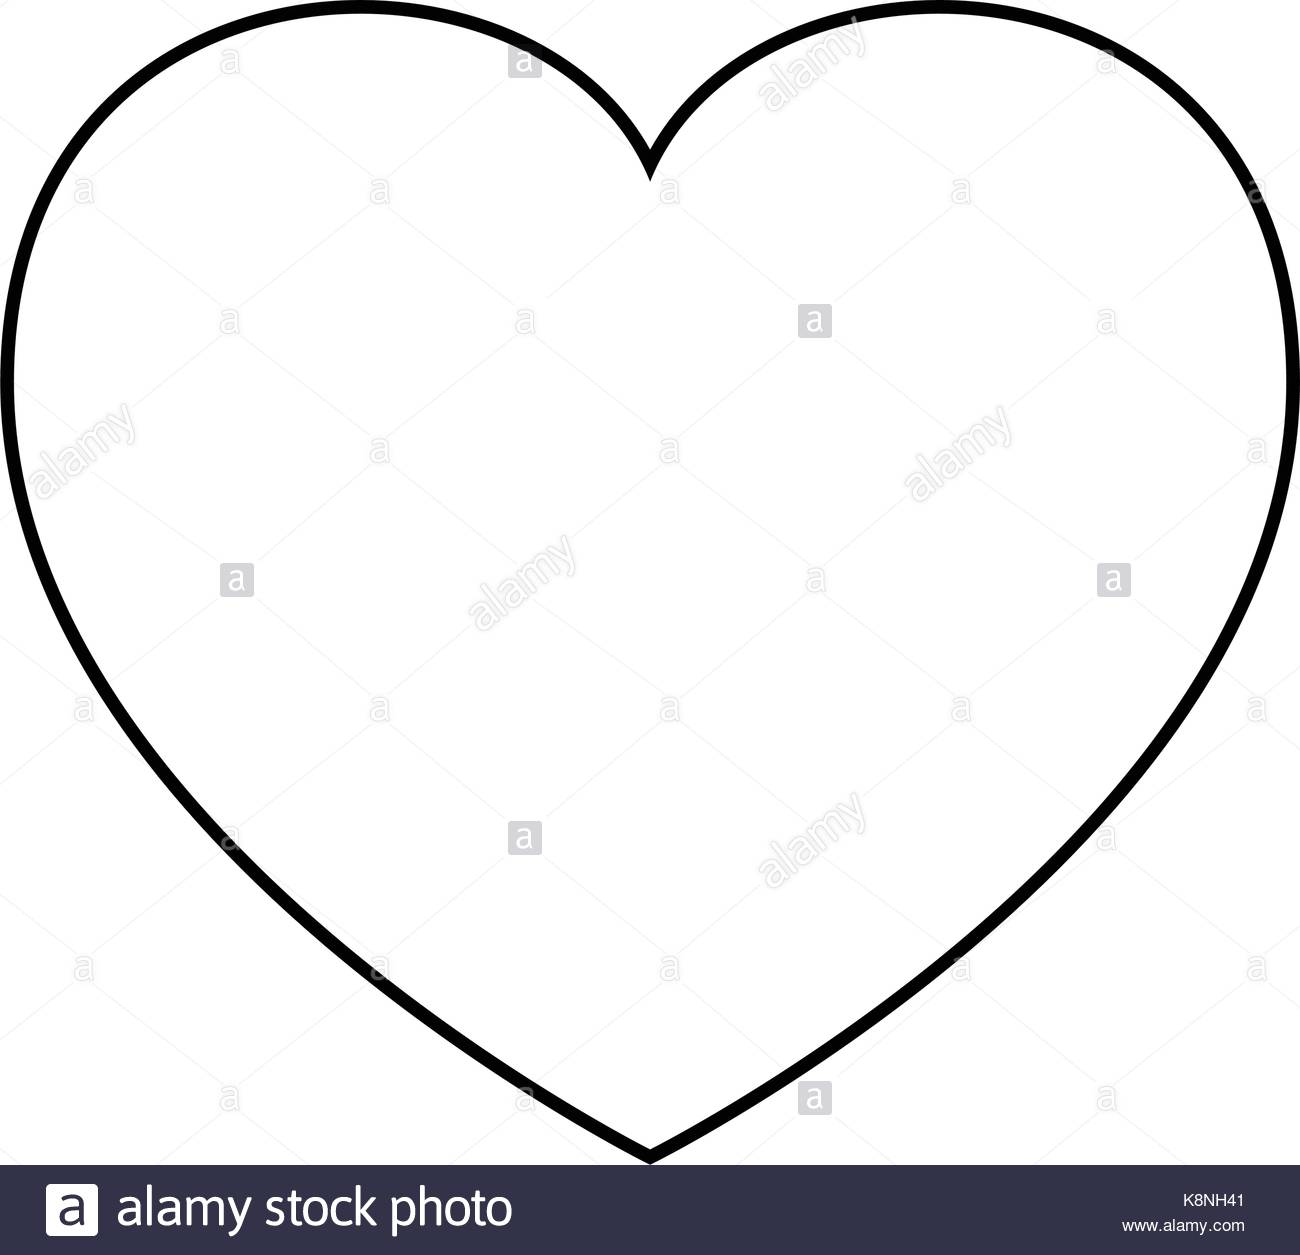 1300x1255 Human Heart Black And White Stock Photos Amp Images